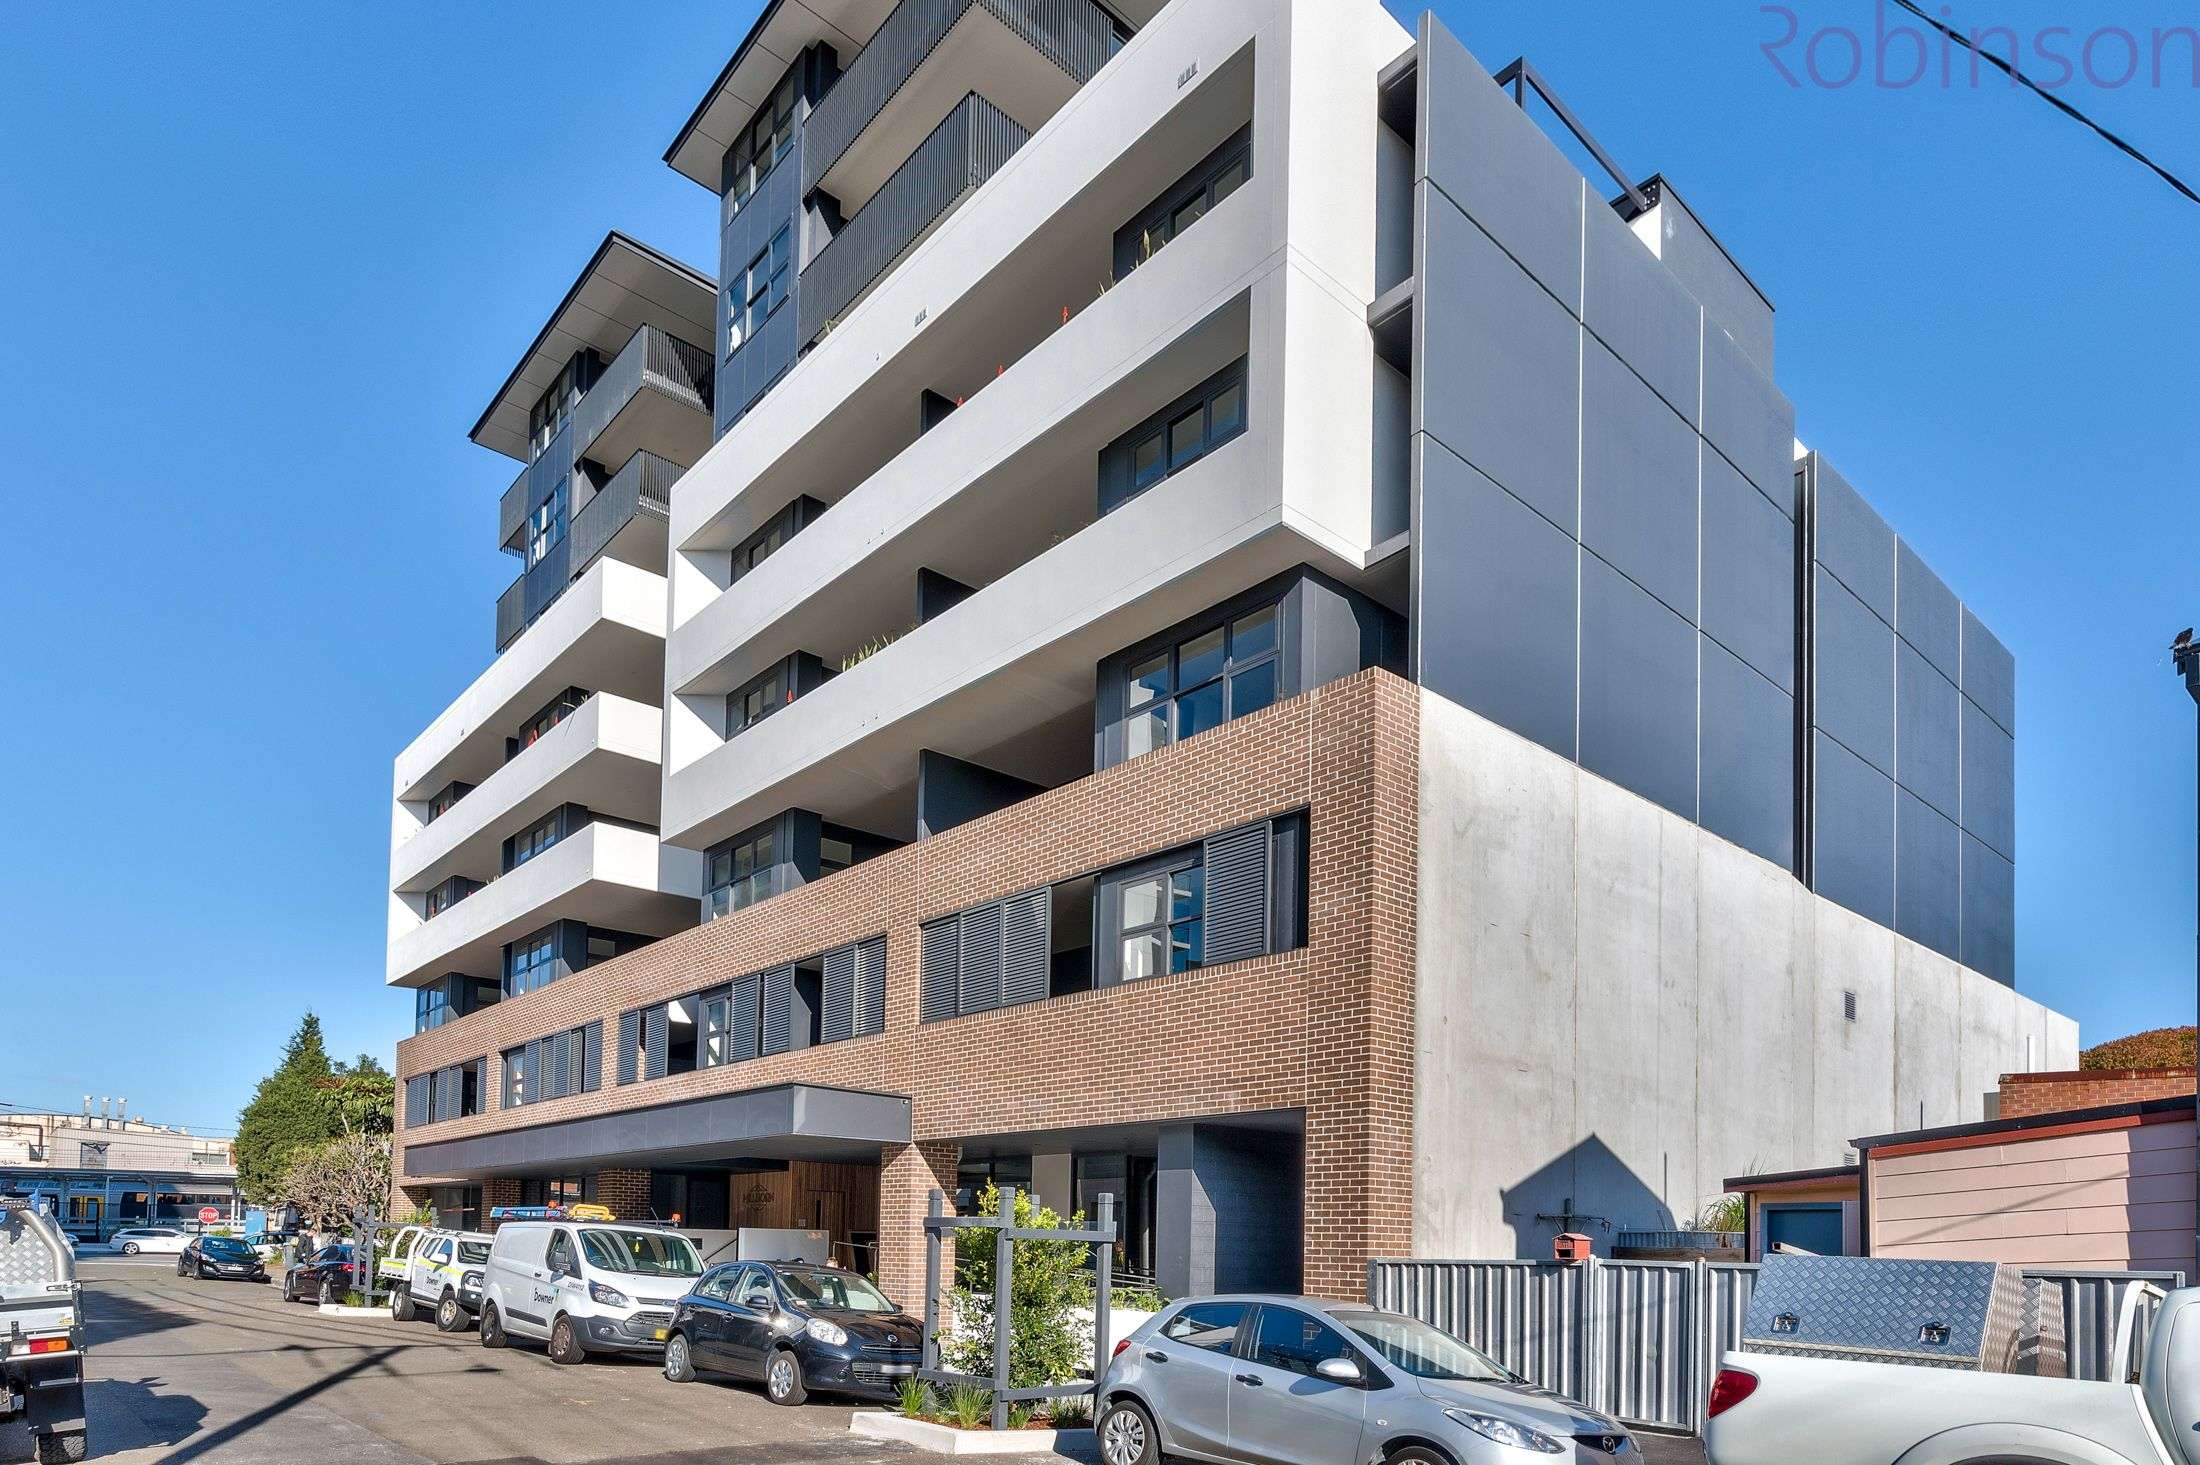 Level 6/603/7 Wickham Street, Wickham